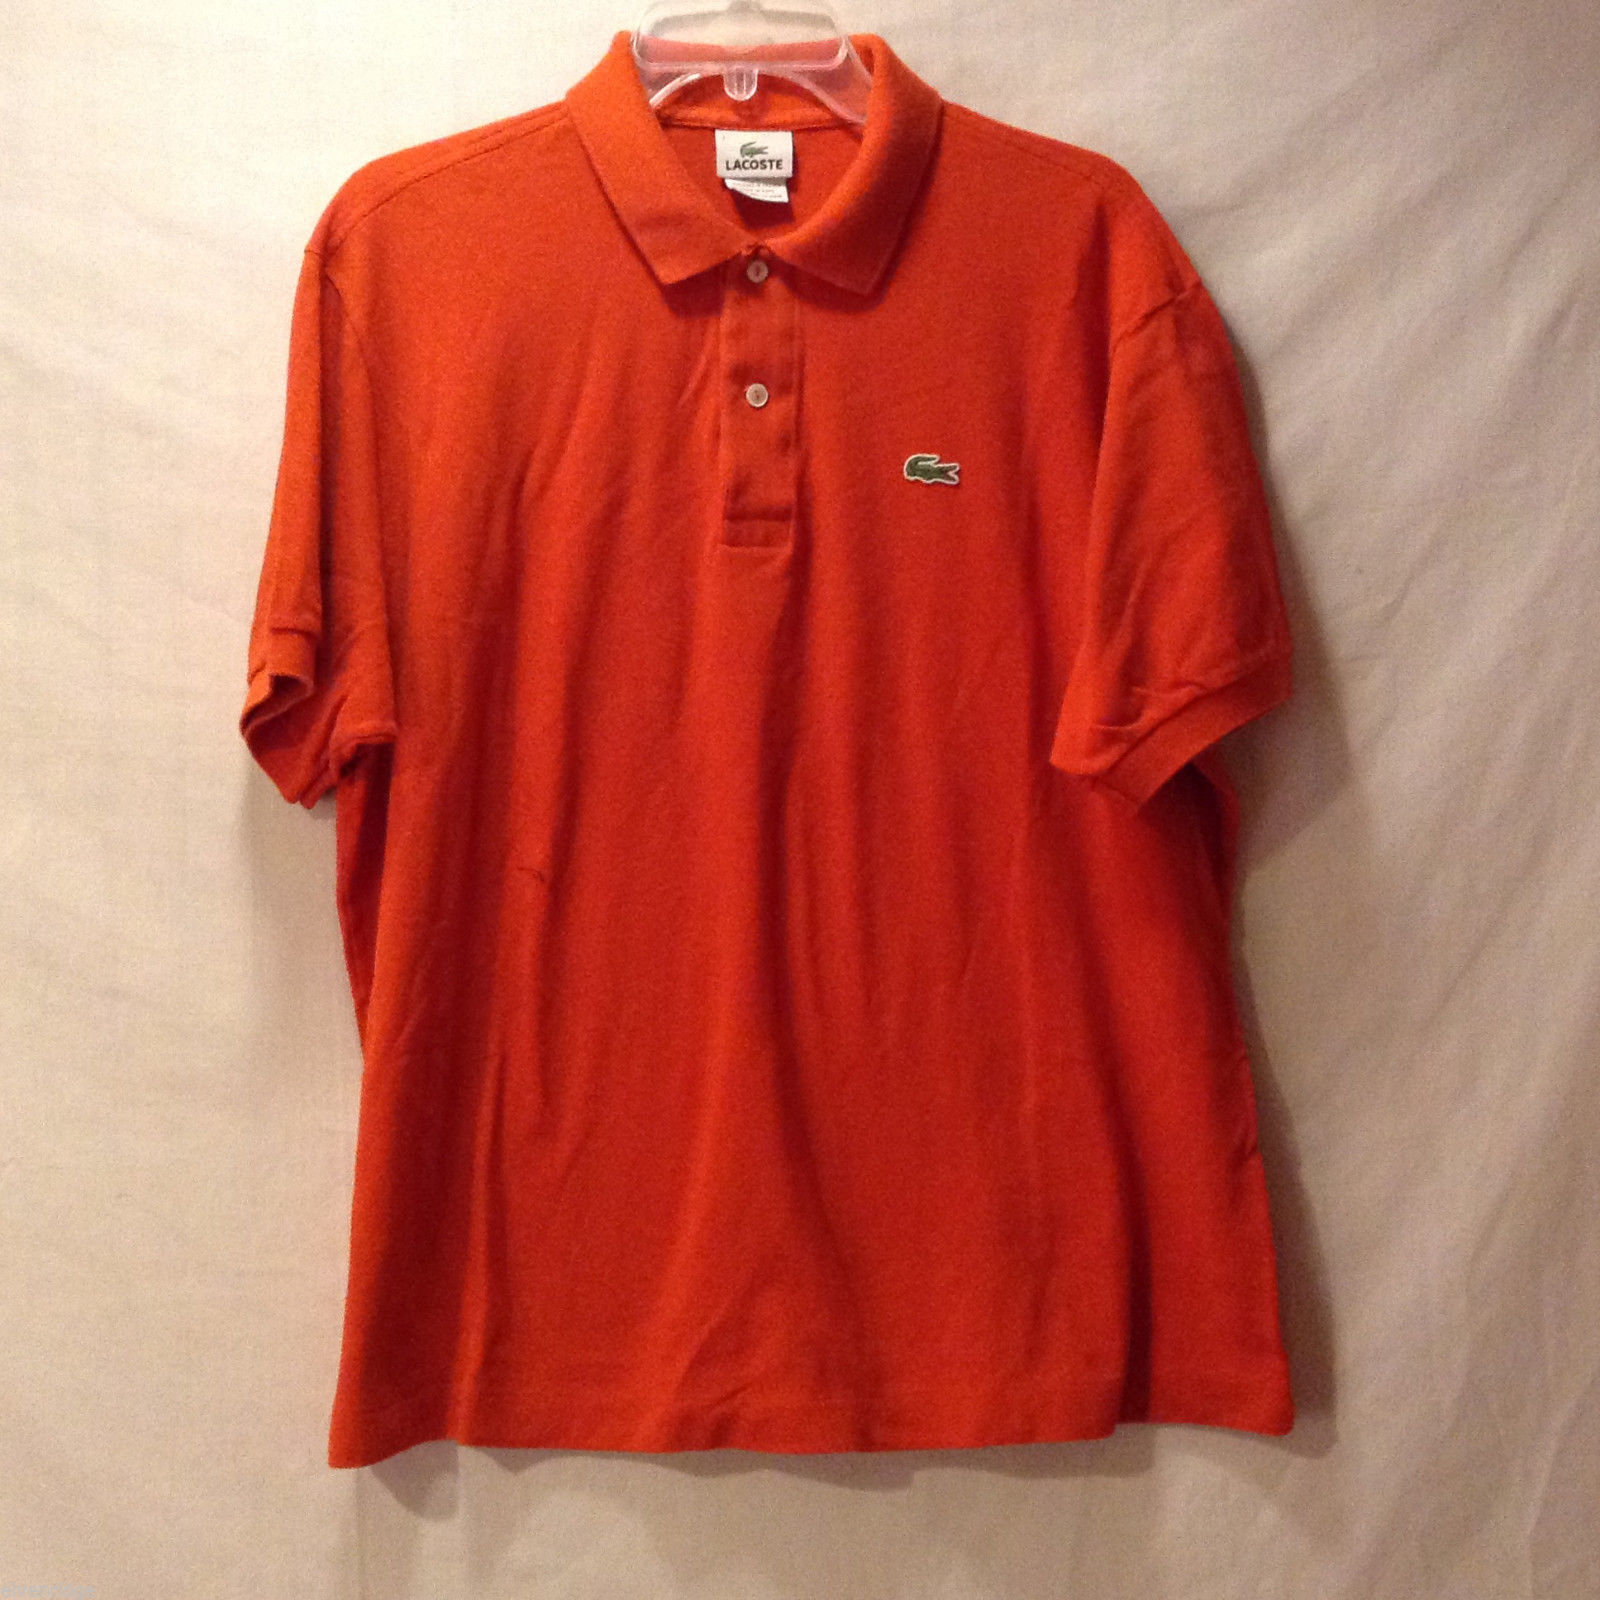 Men's Size 2XL Polo Shirt 100% Cotton Bright Solid Orange Short Sleeves